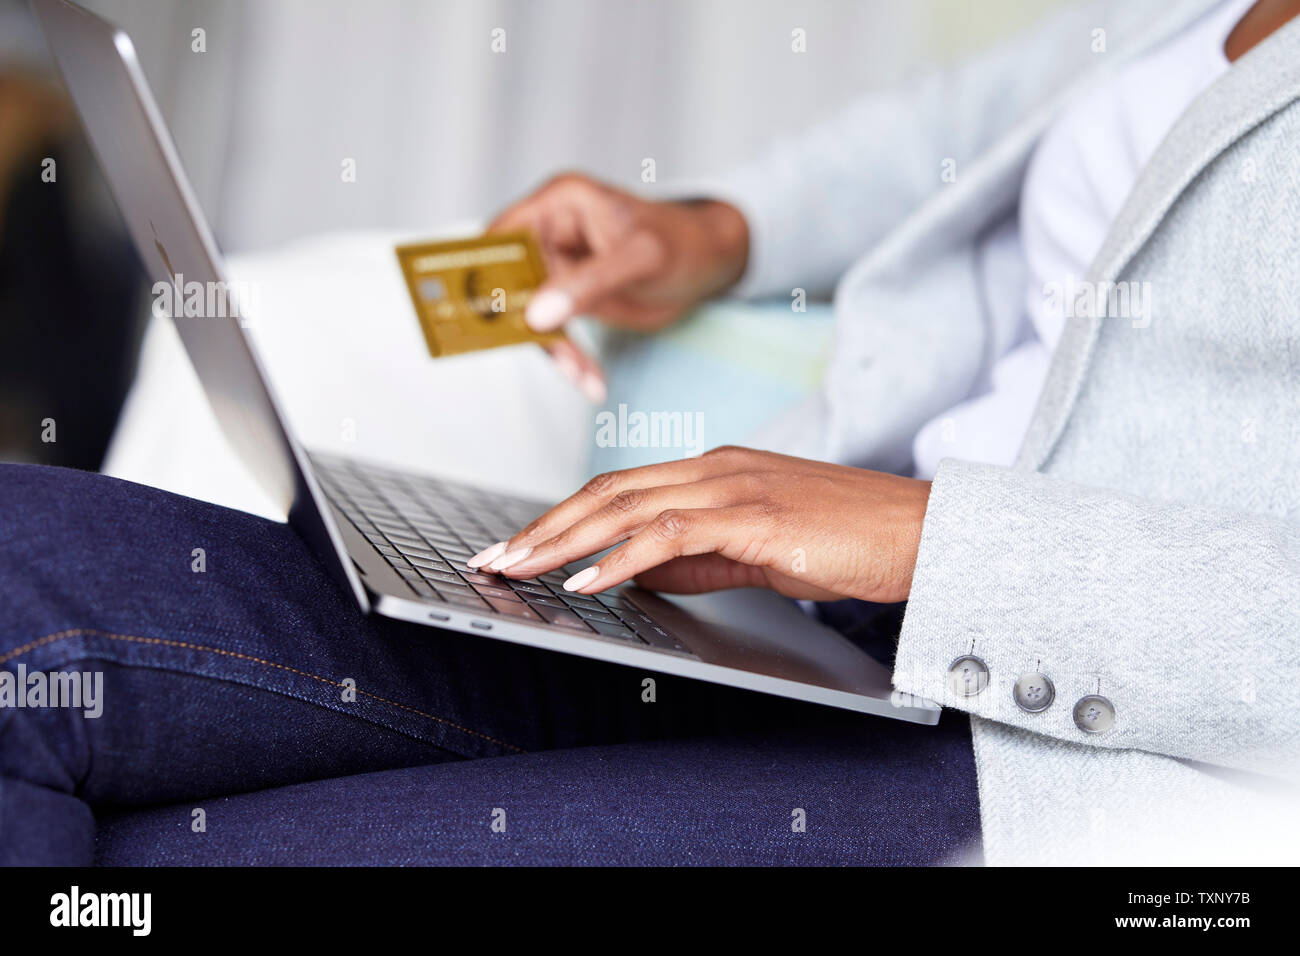 Ethnic woman shopping online using laptop Stock Photo